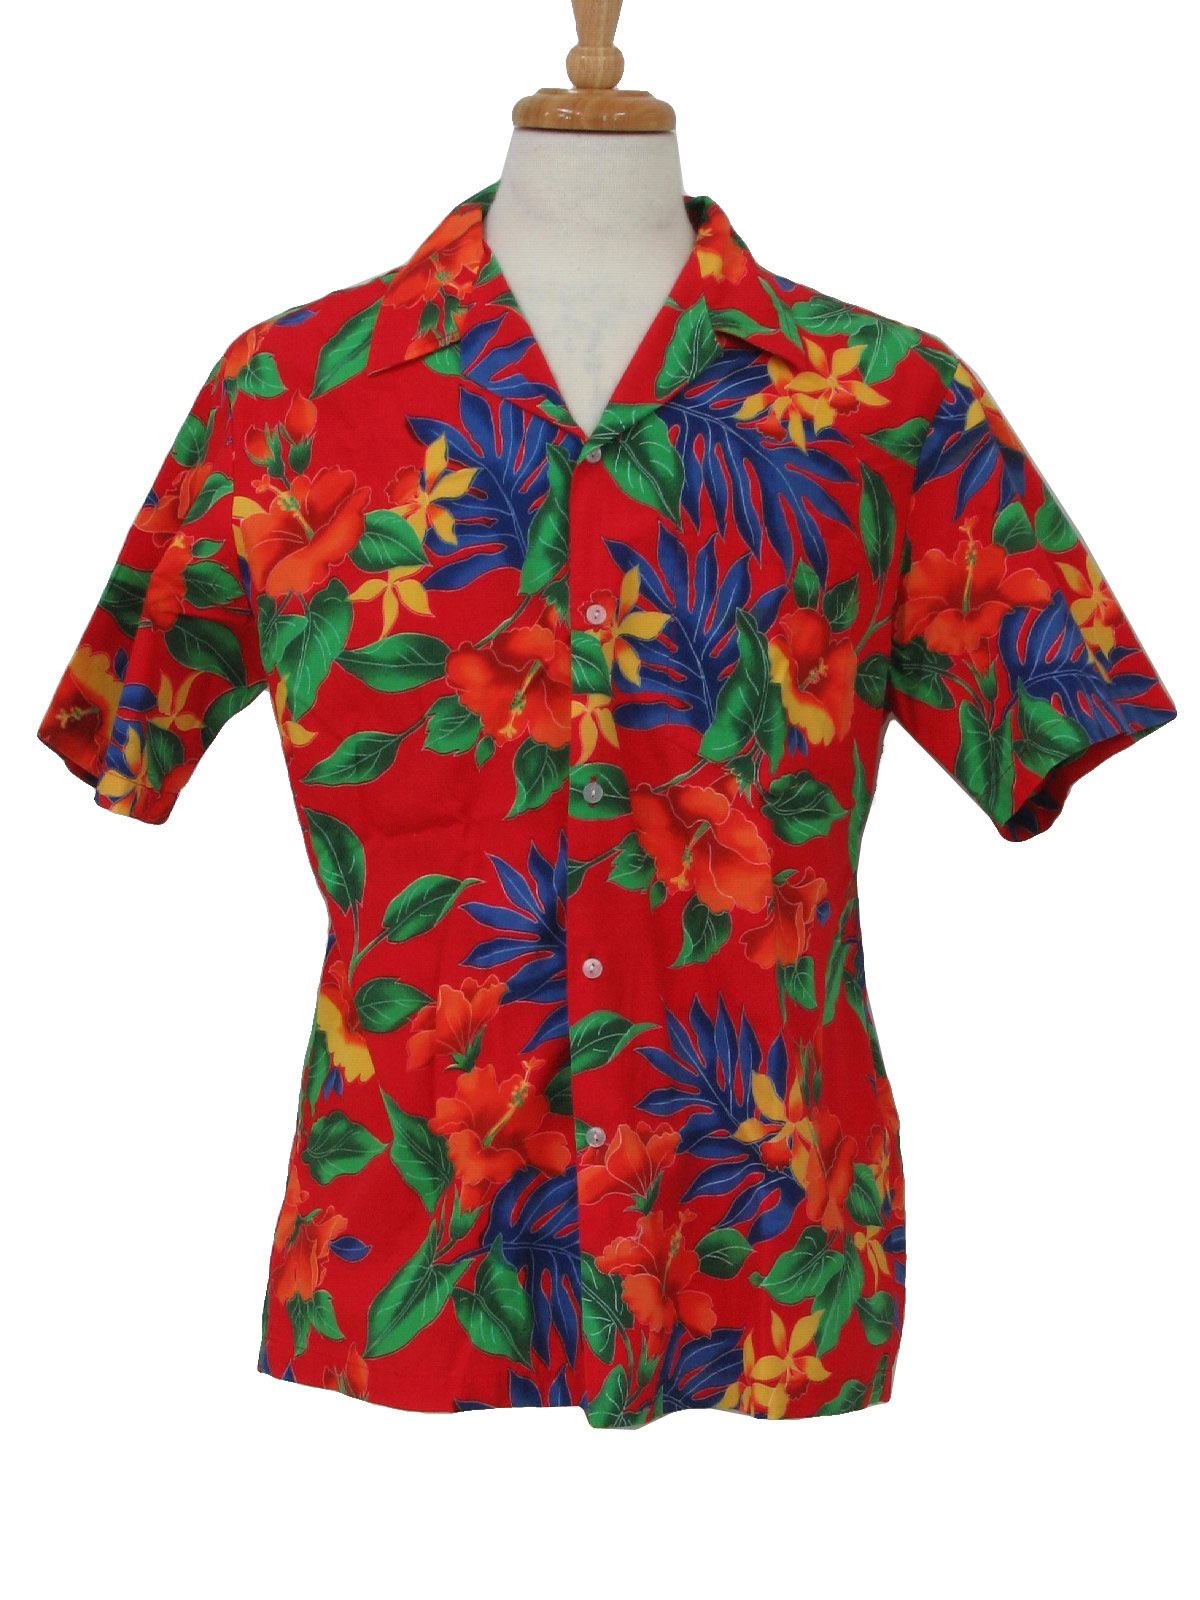 a5c288161 Howie Made in Hawaii Nineties Vintage Hawaiian Shirt: 90s -Howie ...